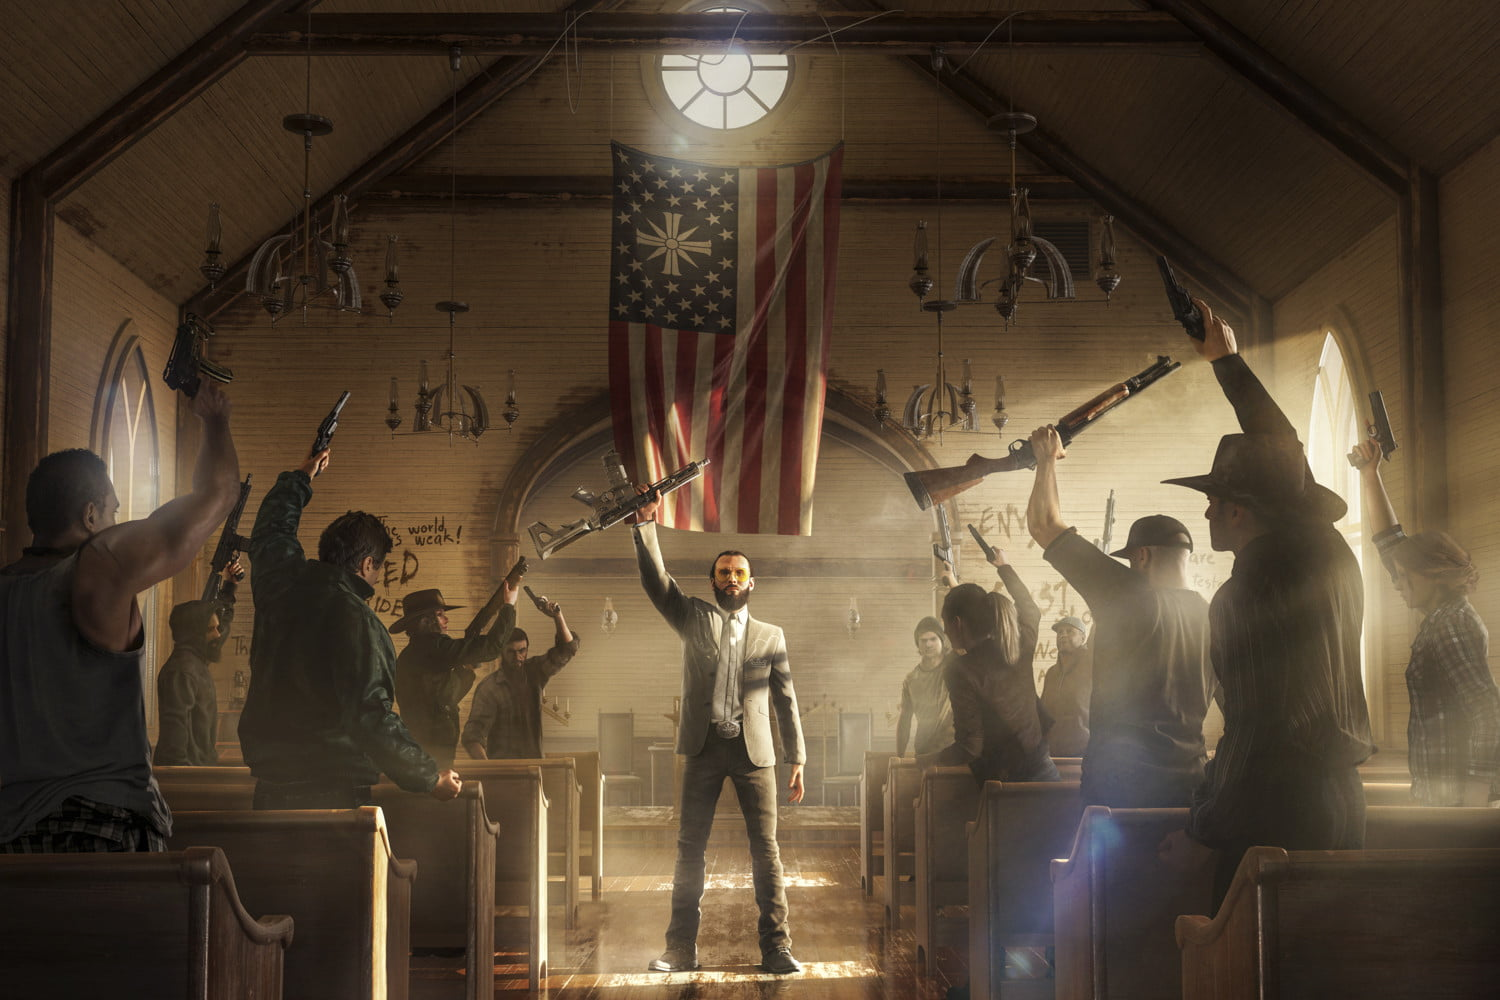 Dan Romer Talks About Making The Music Of Far Cry 5